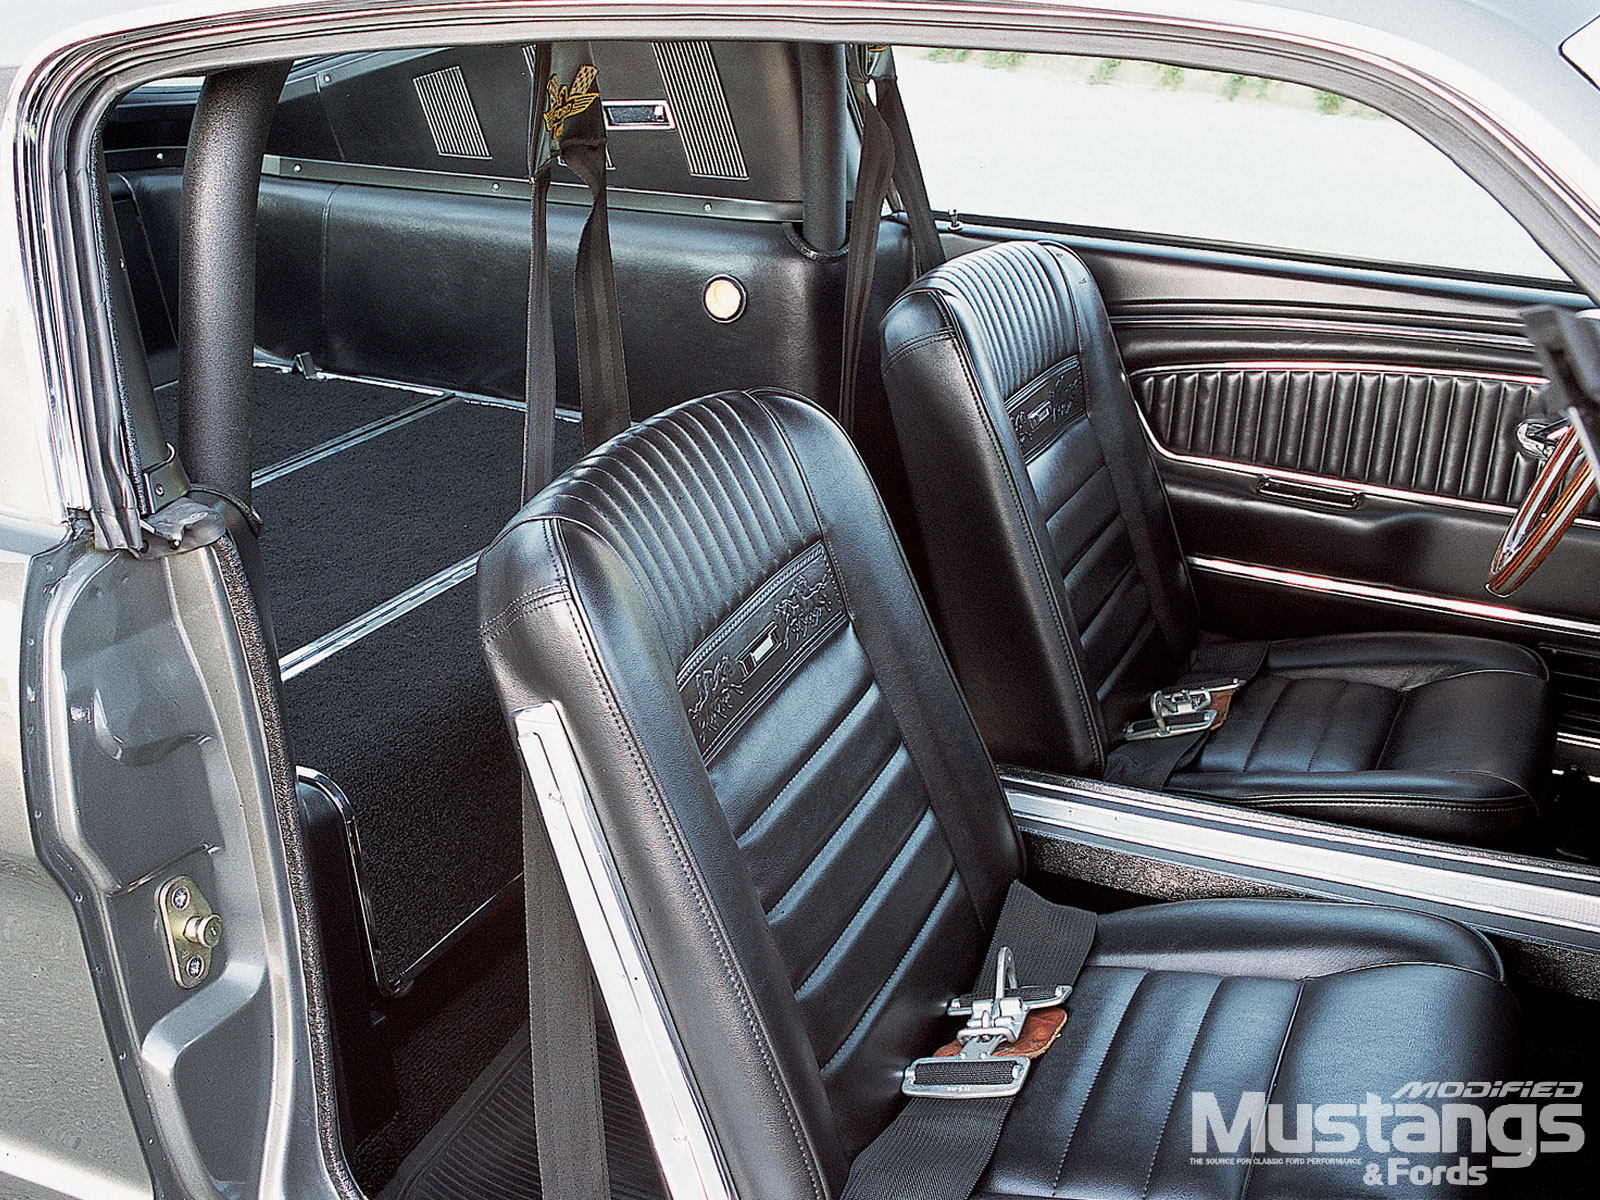 1965 Ford Mustang Fastback Seats